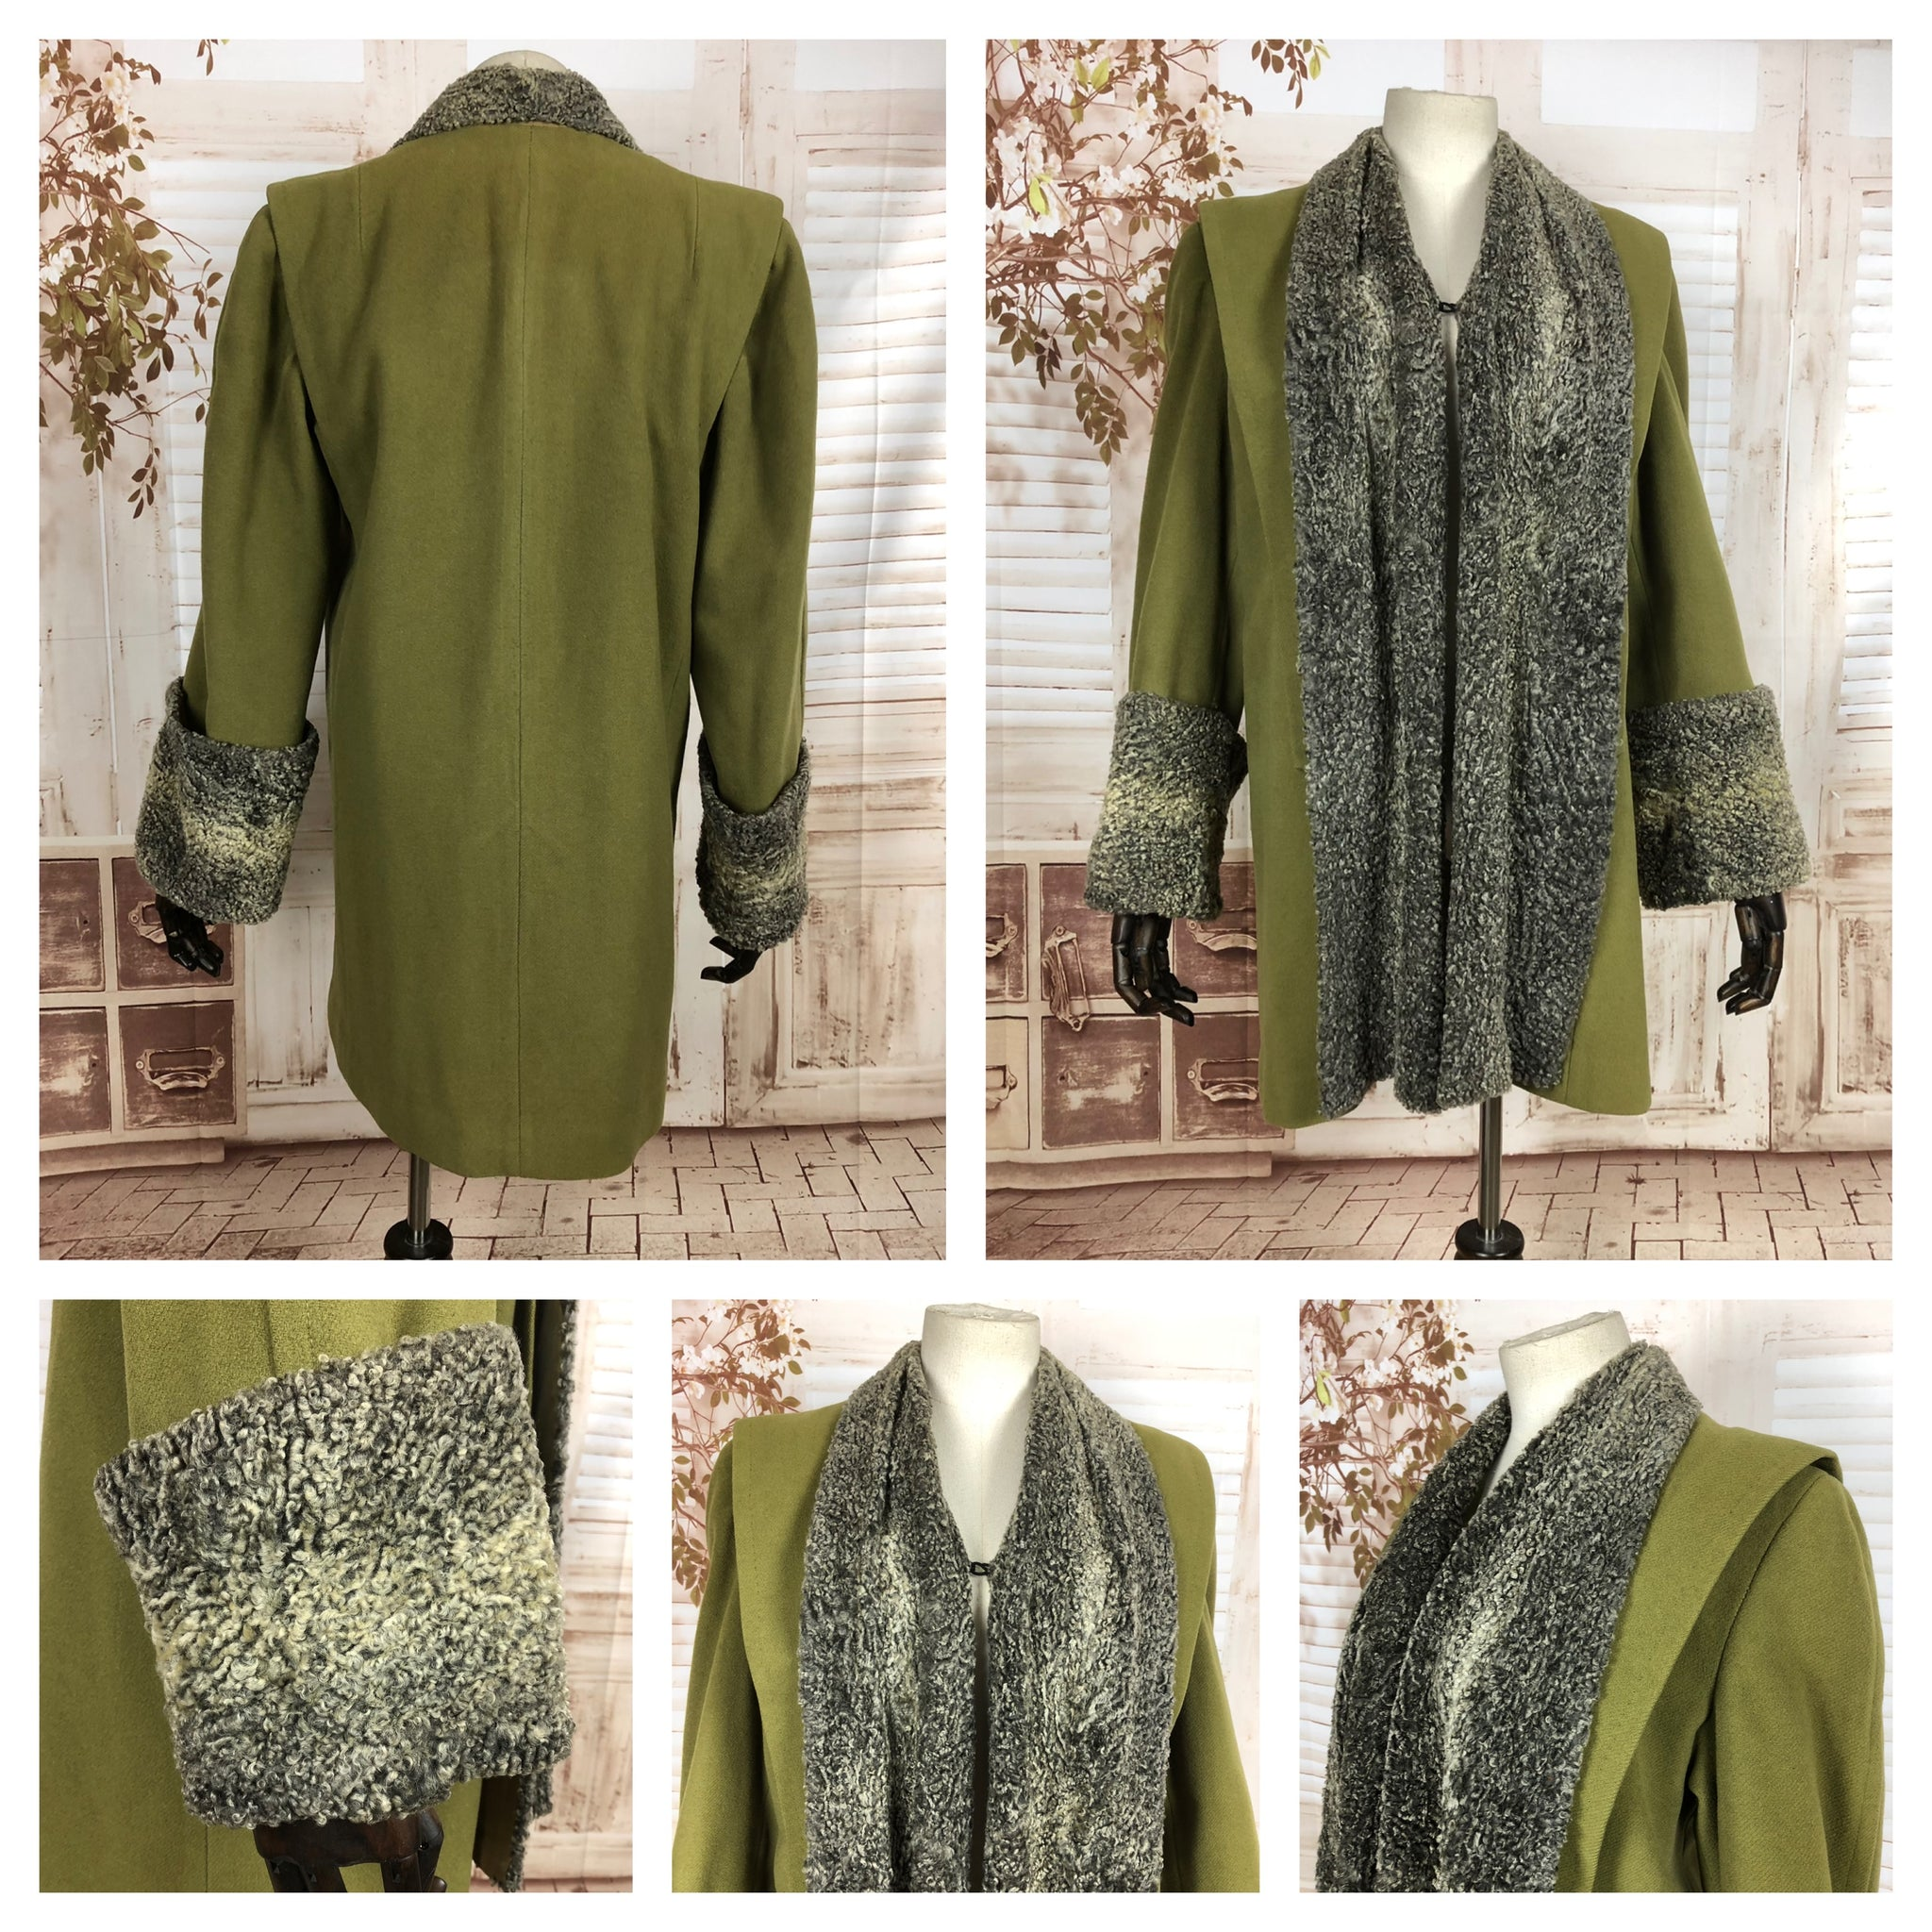 LAYAWAY PAYMENT 2 OF 2 - RESERVED FOR VICKY -Original Vintage 1940s 40s Chartreuse Green Swing Coat With Astrakhan Trim